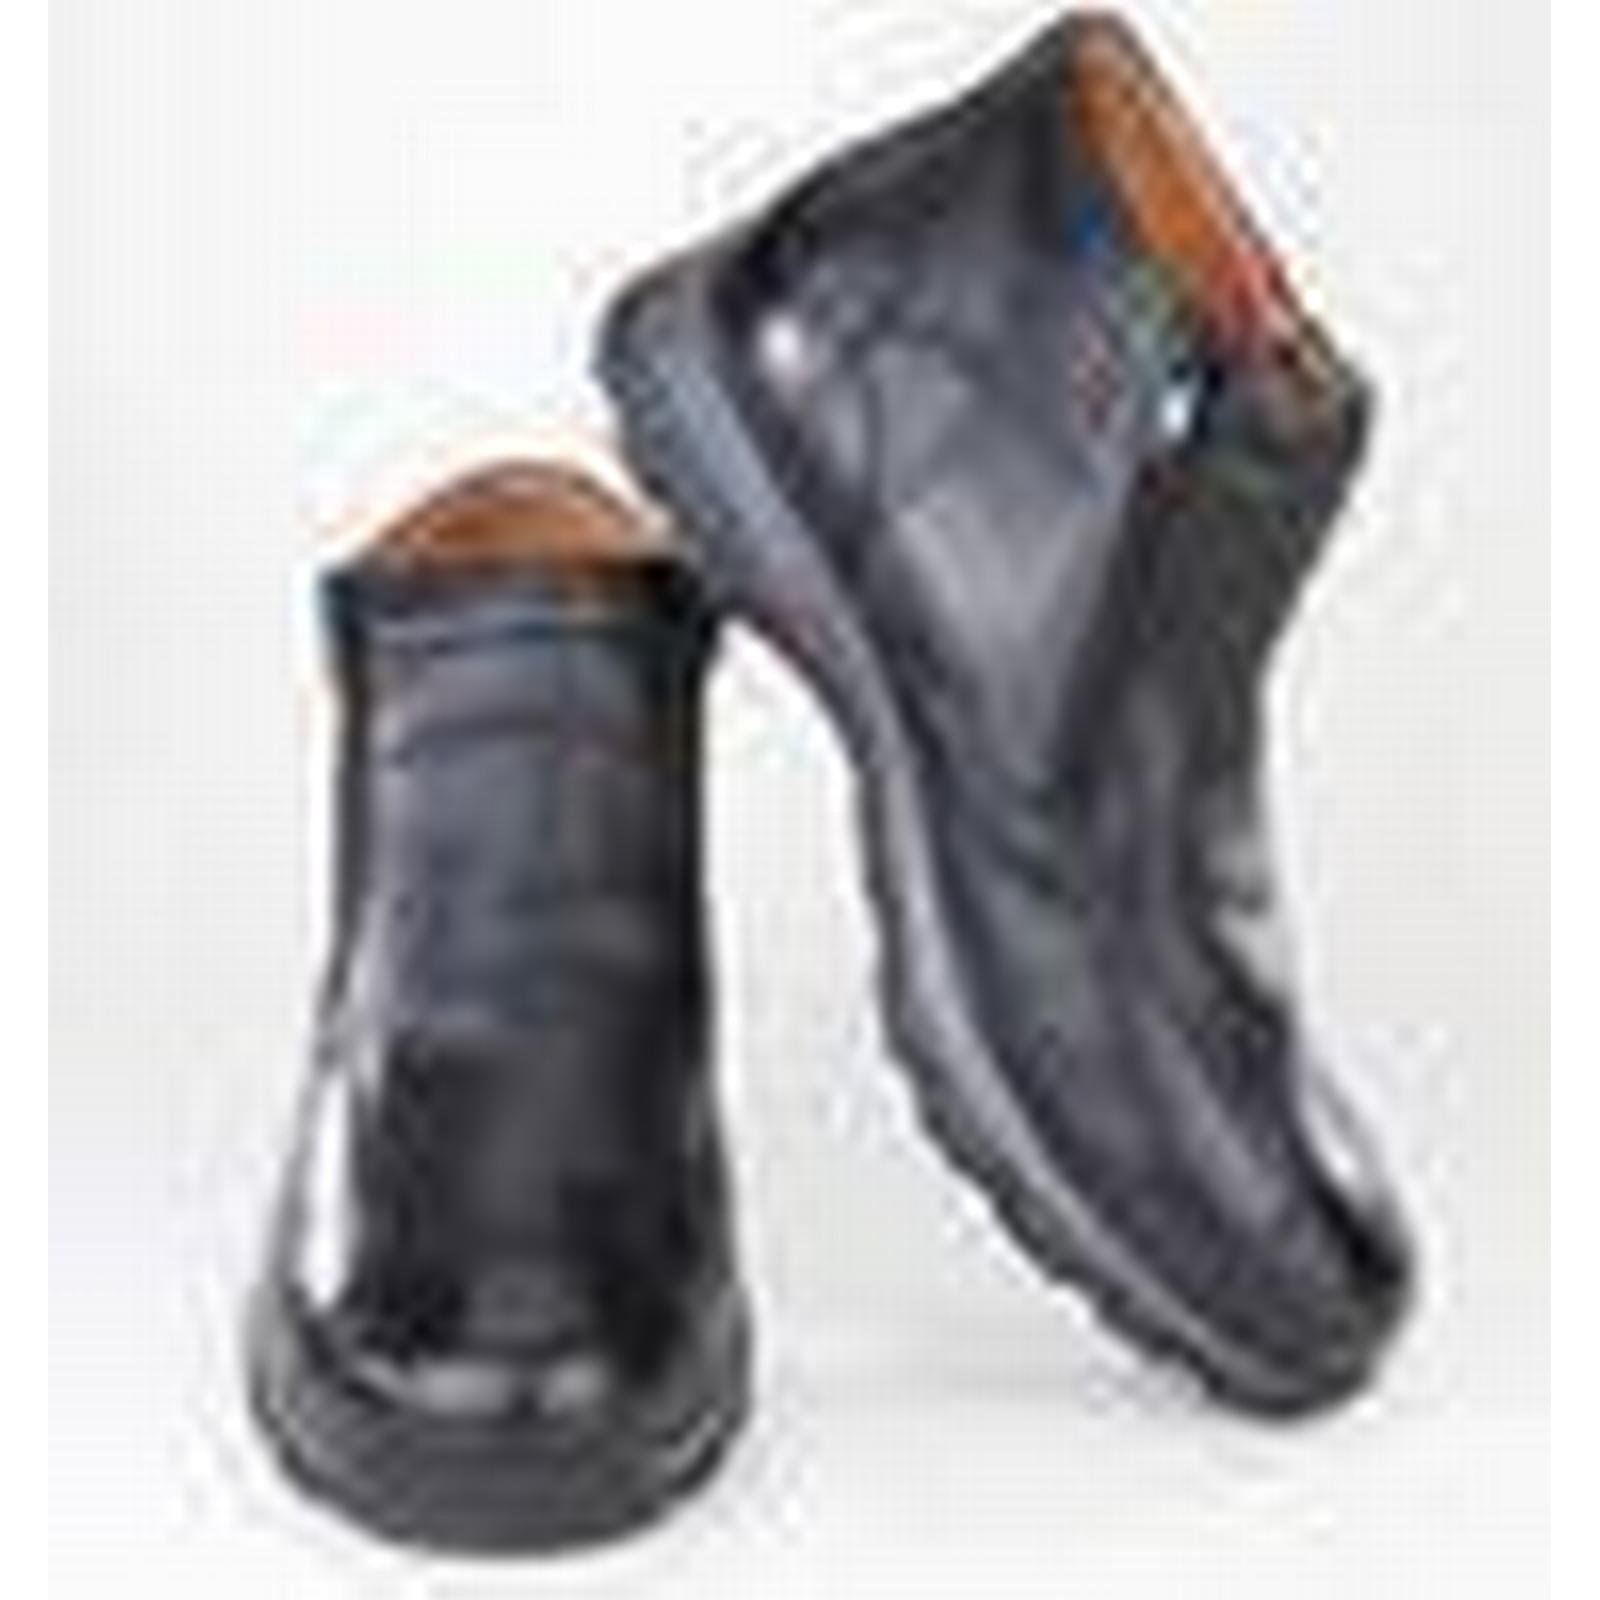 le confort des chaussures style, duo rv dr flexer style, chaussures diff 04680d